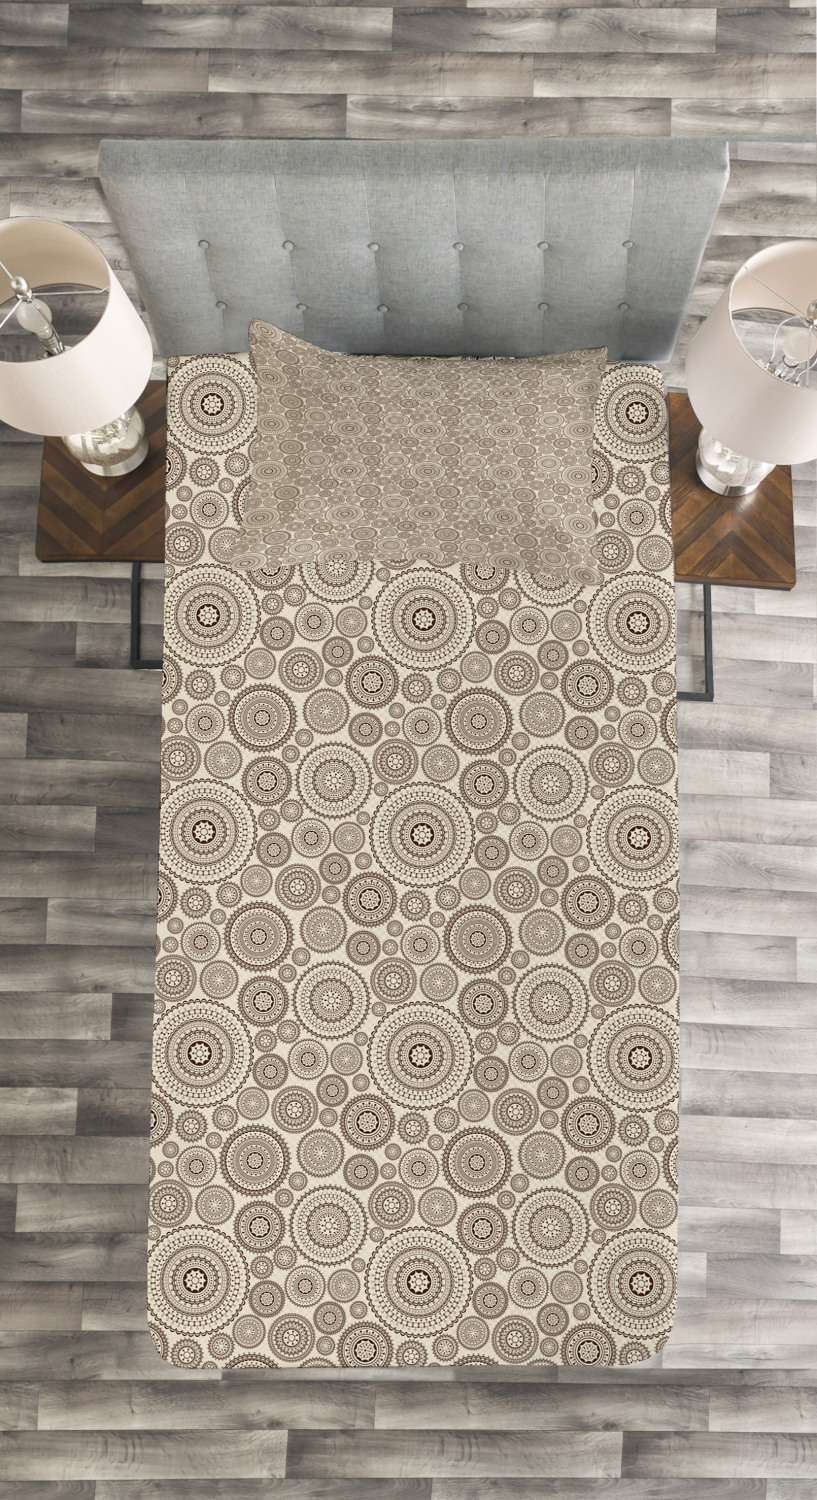 Beige-Quilted-Bedspread-amp-Pillow-Shams-Set-Circular-Composition-Lace-Print thumbnail 4